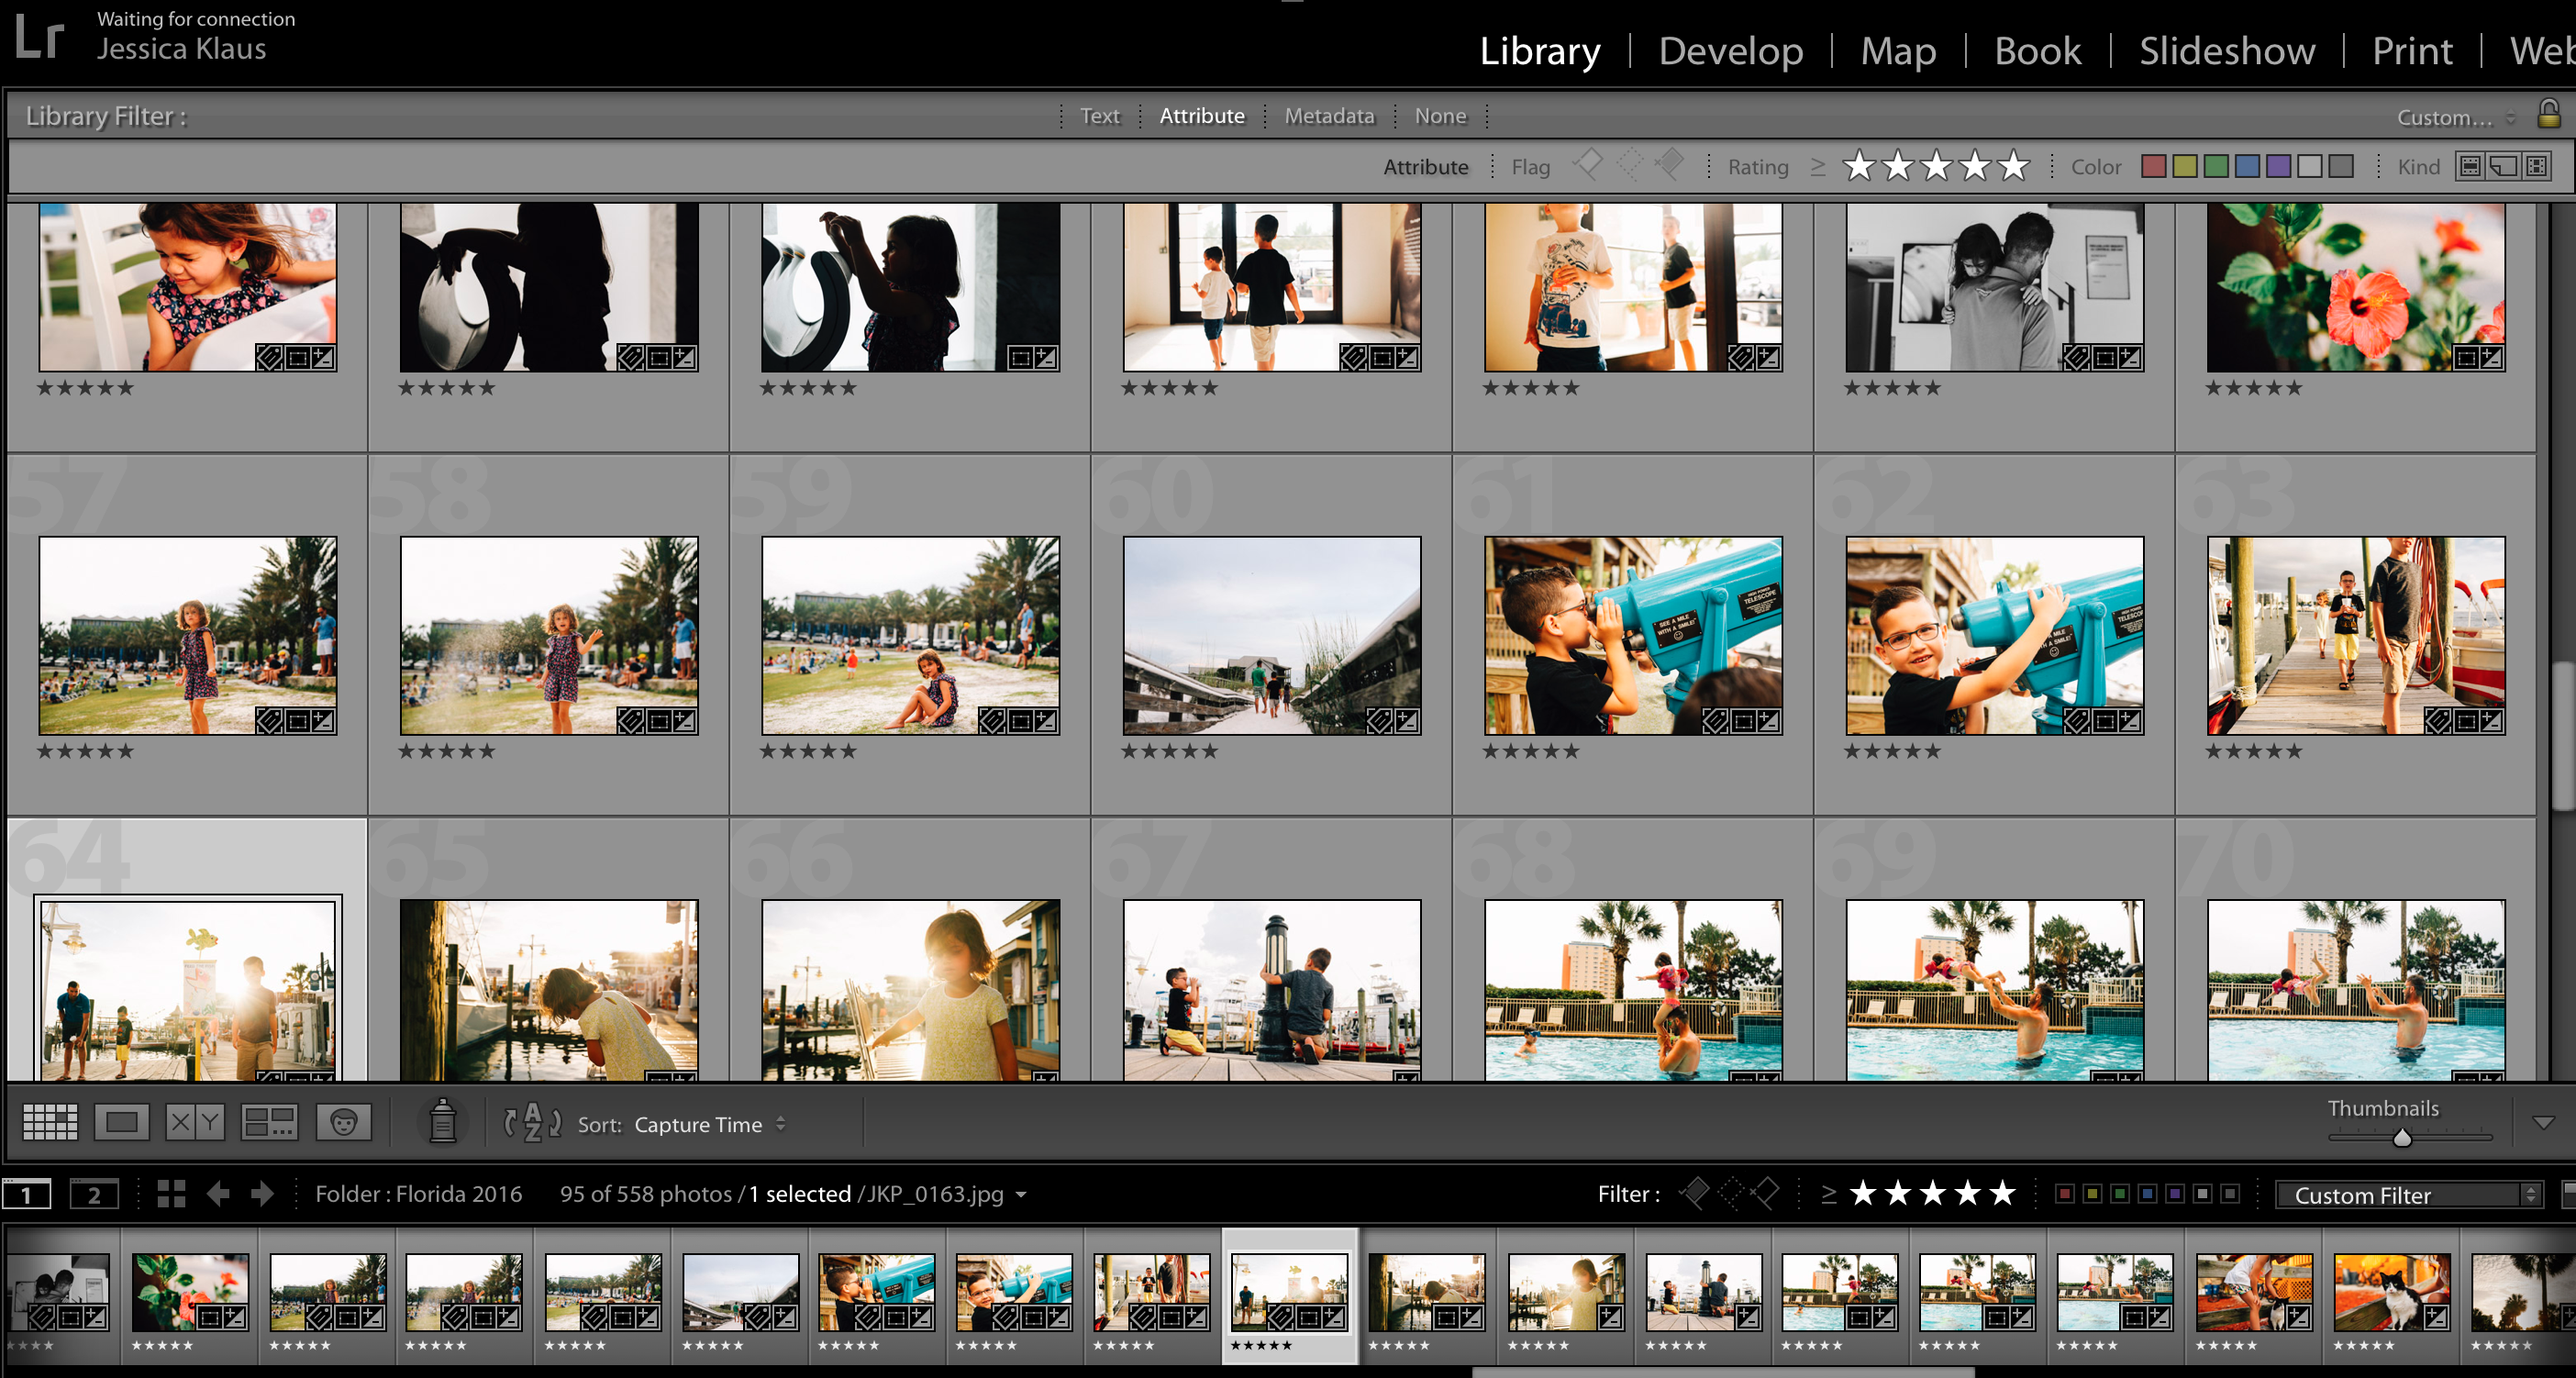 culling in lightroom, lightroom, photography websites, business advice, stock photography, offset